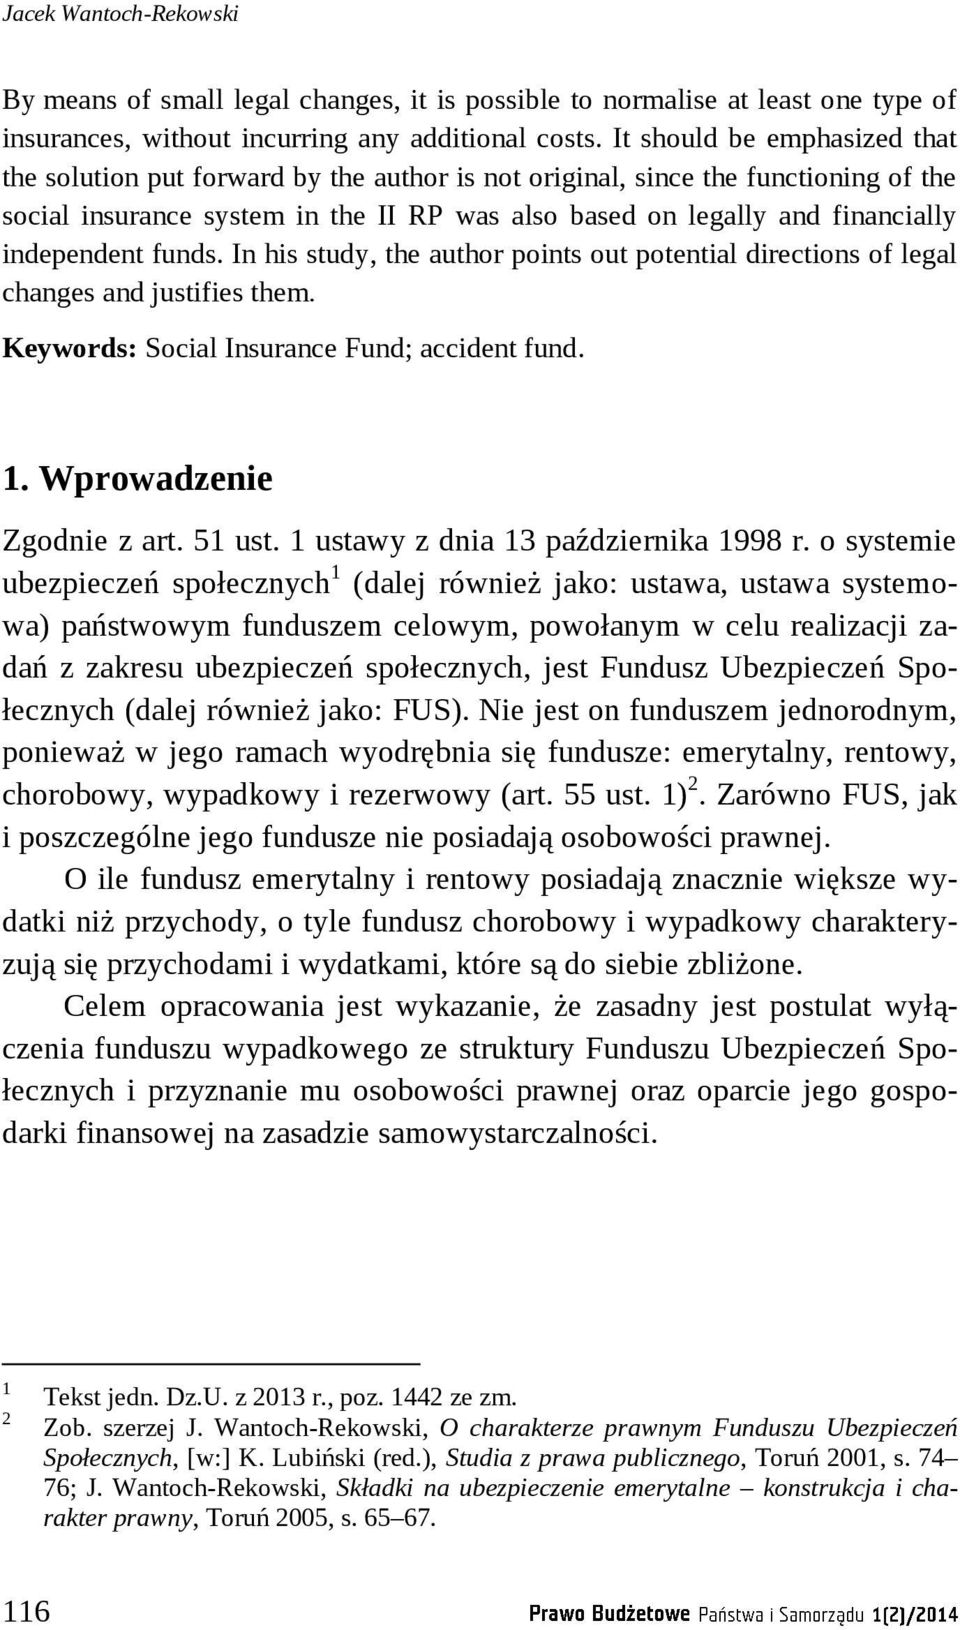 independent funds. In his study, the author points out potential directions of legal changes and justifies them. Keywords: Social Insurance Fund; accident fund. 1. Wprowadzenie Zgodnie z art. 51 ust.